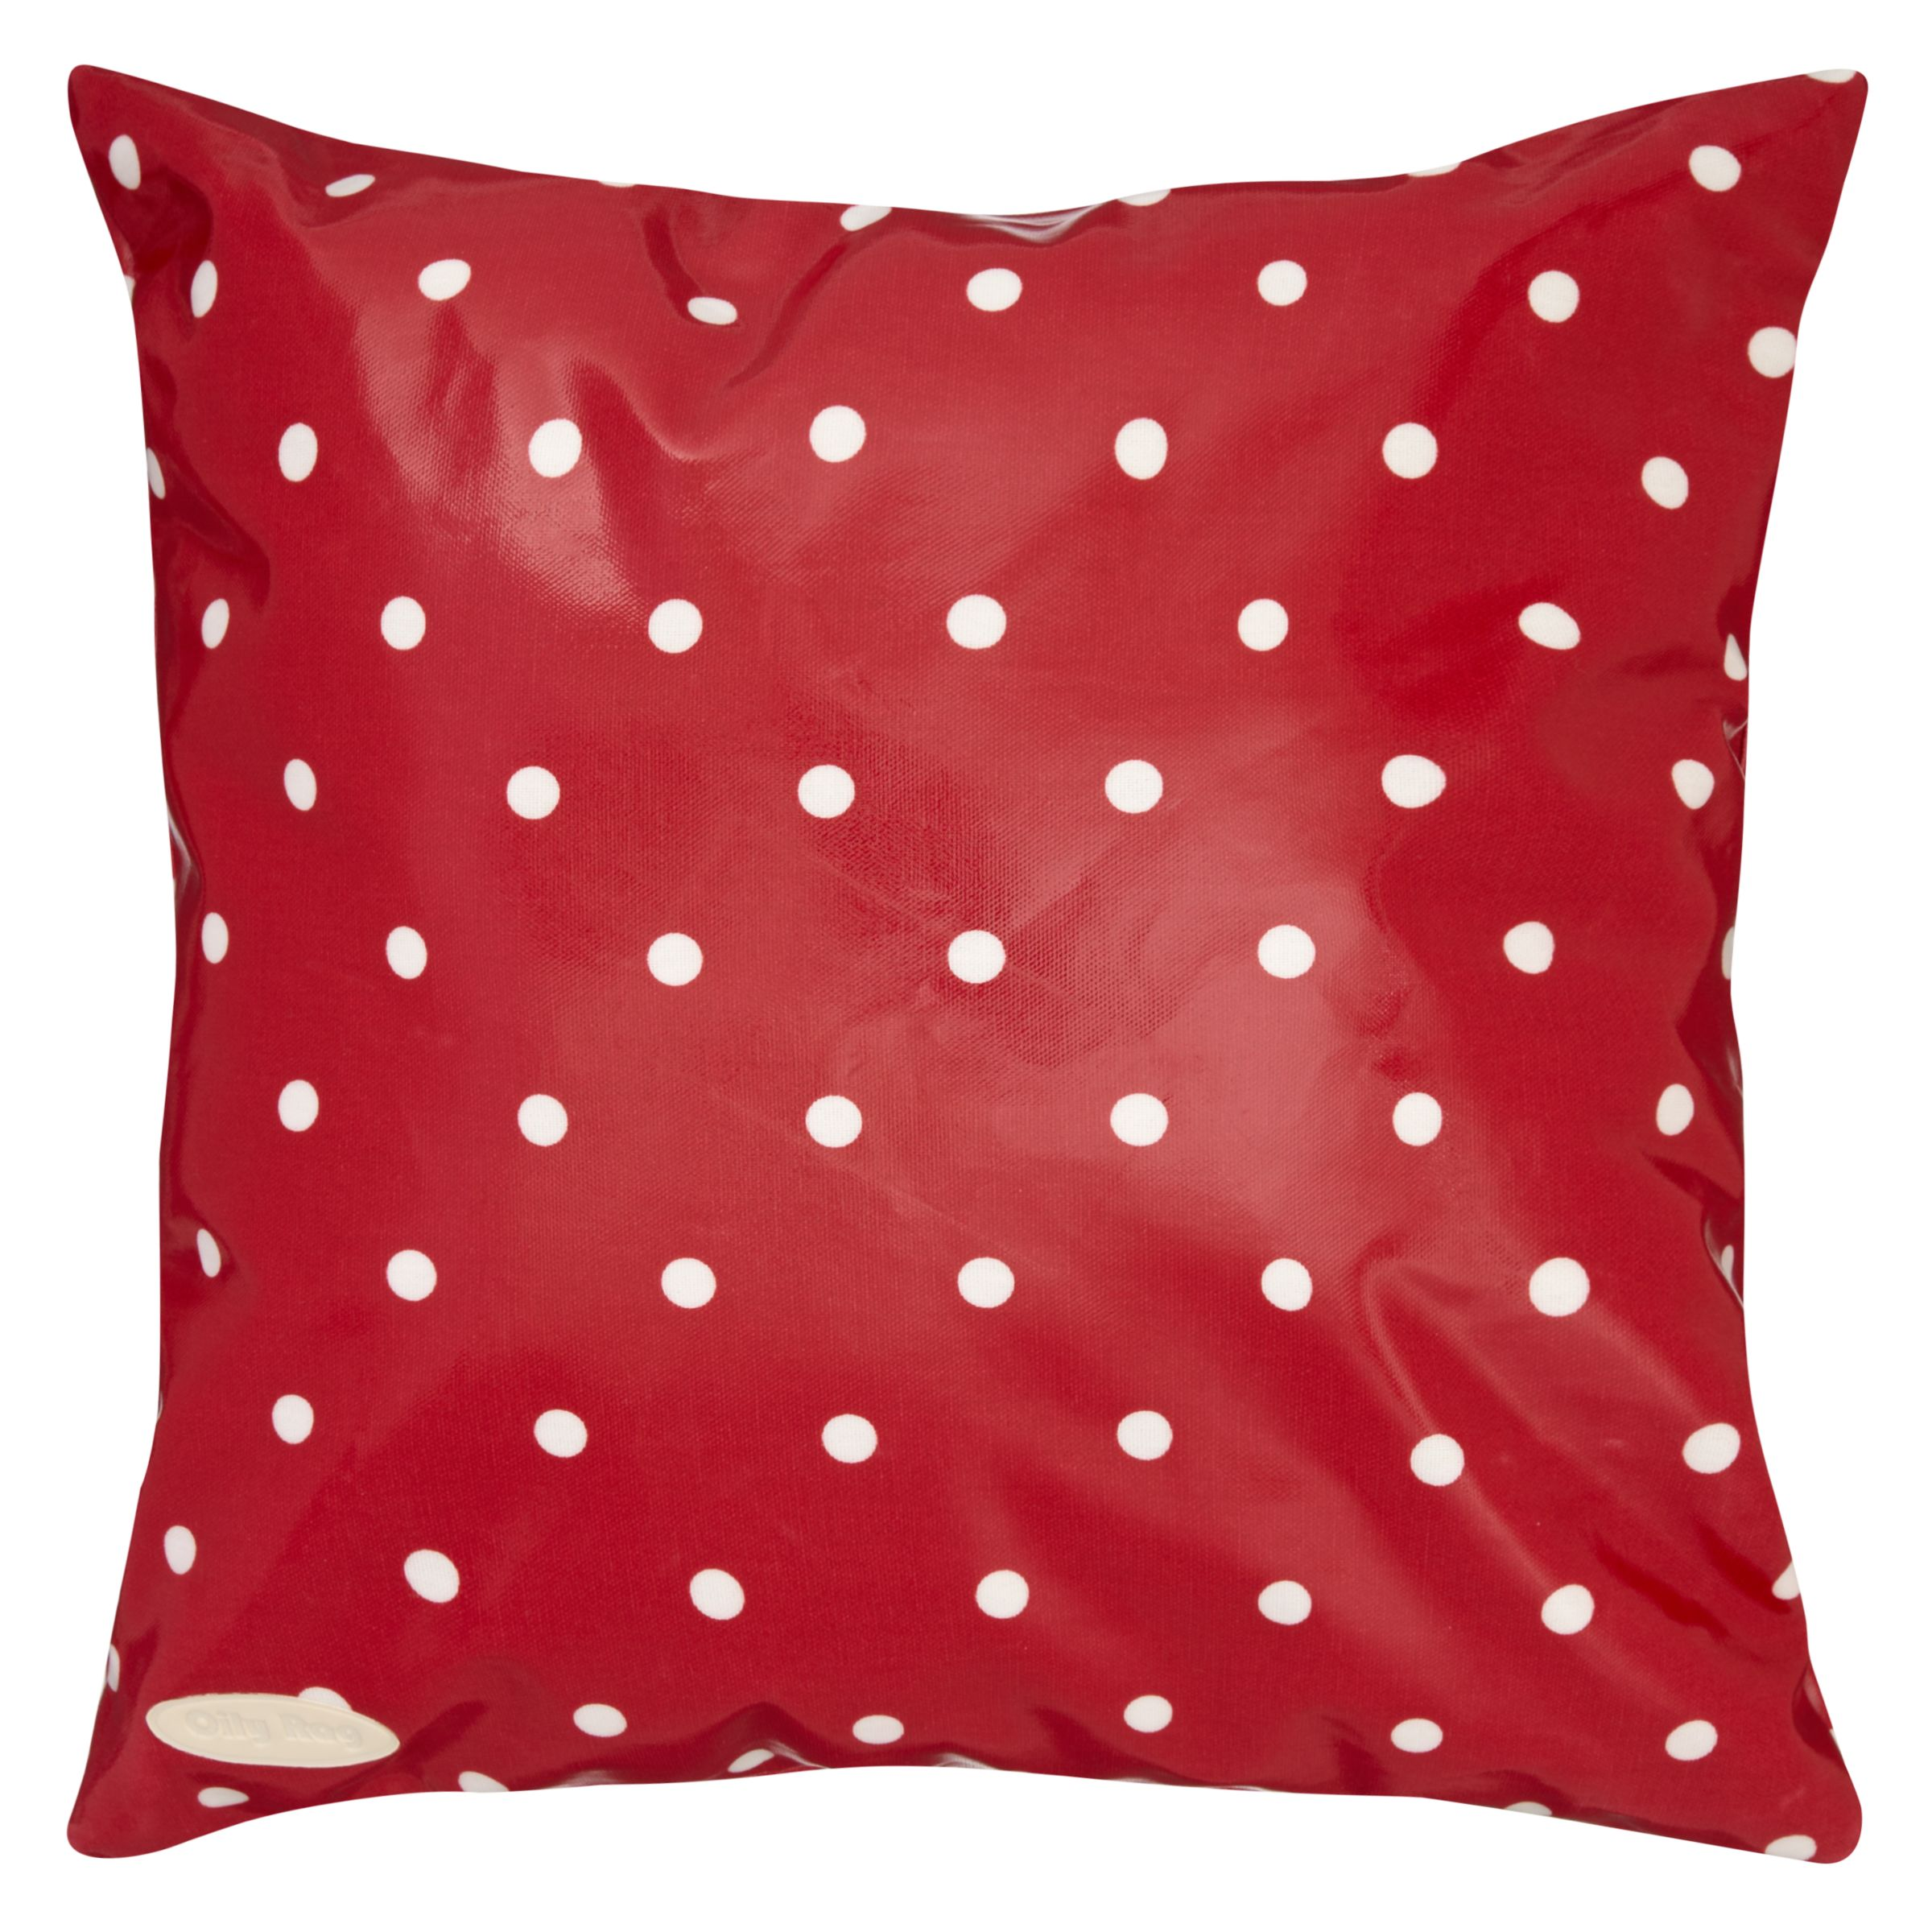 Oily Rag Spotty Outdoor Cushion, 40 x 40cm, Red